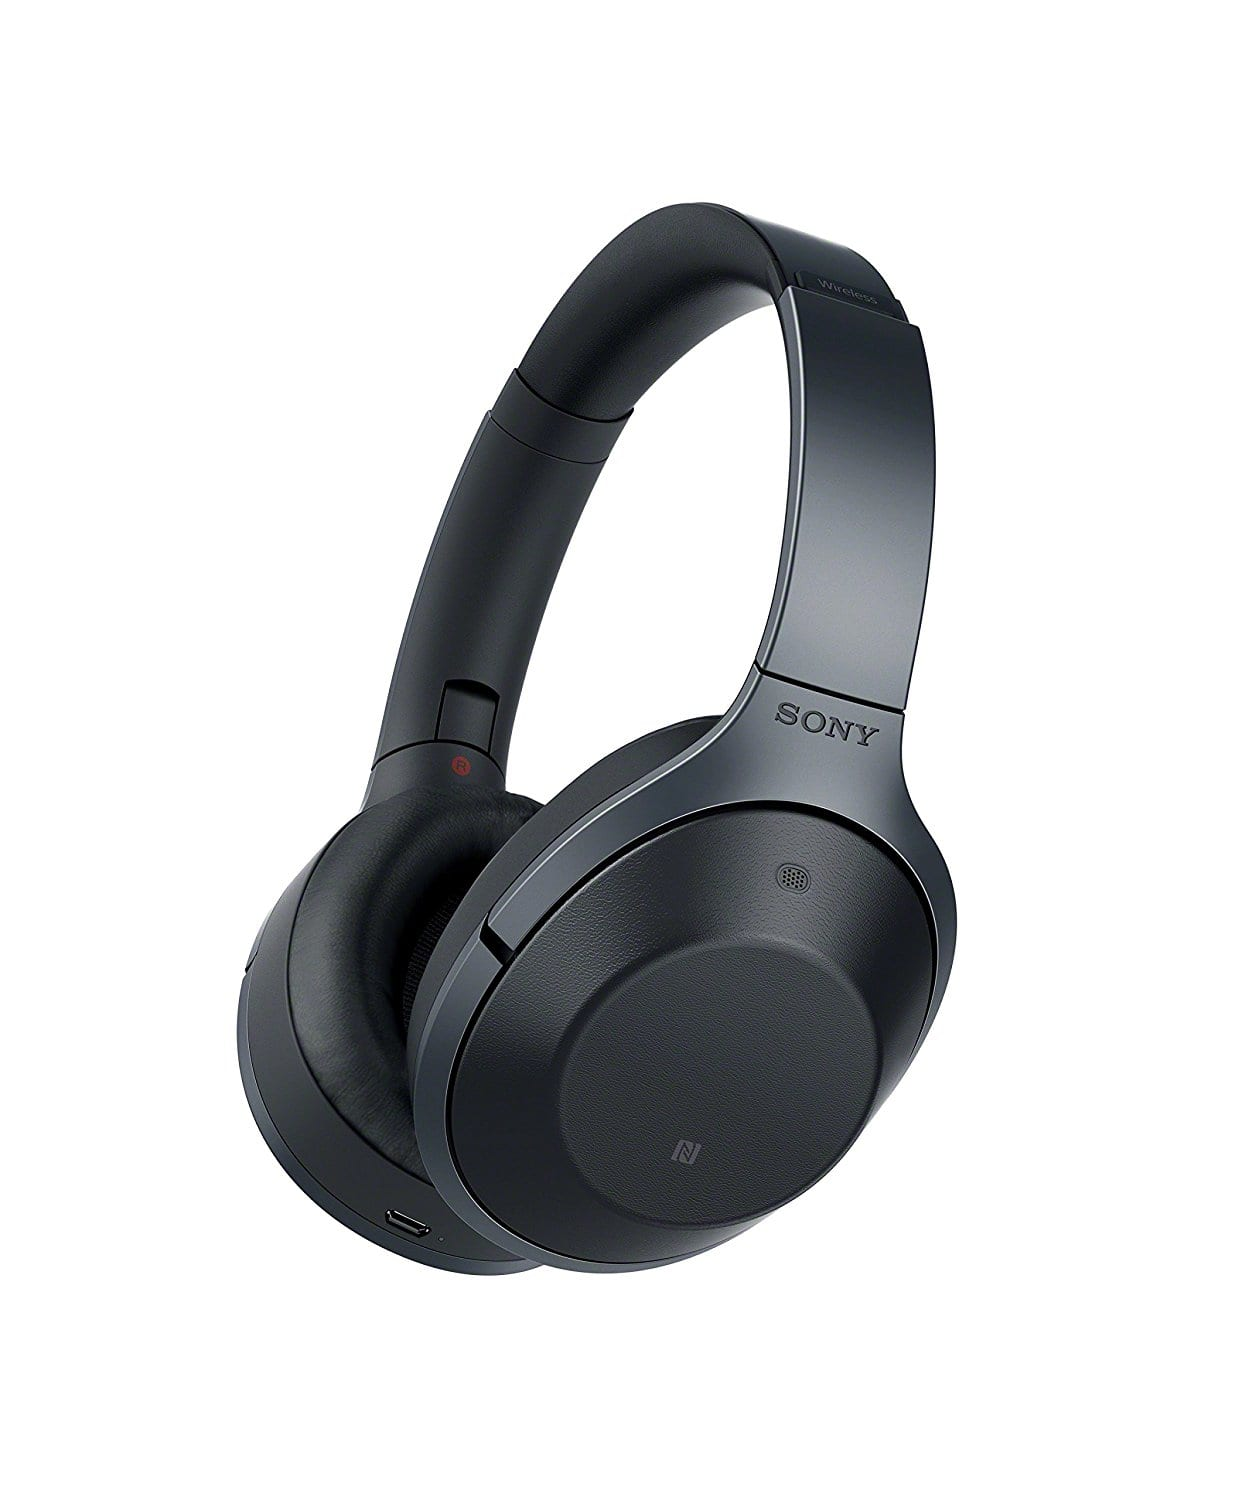 Sony MDR-1000X/B Premium Wireless Noise Cancelling Headphones Black $220 + Free Shipping